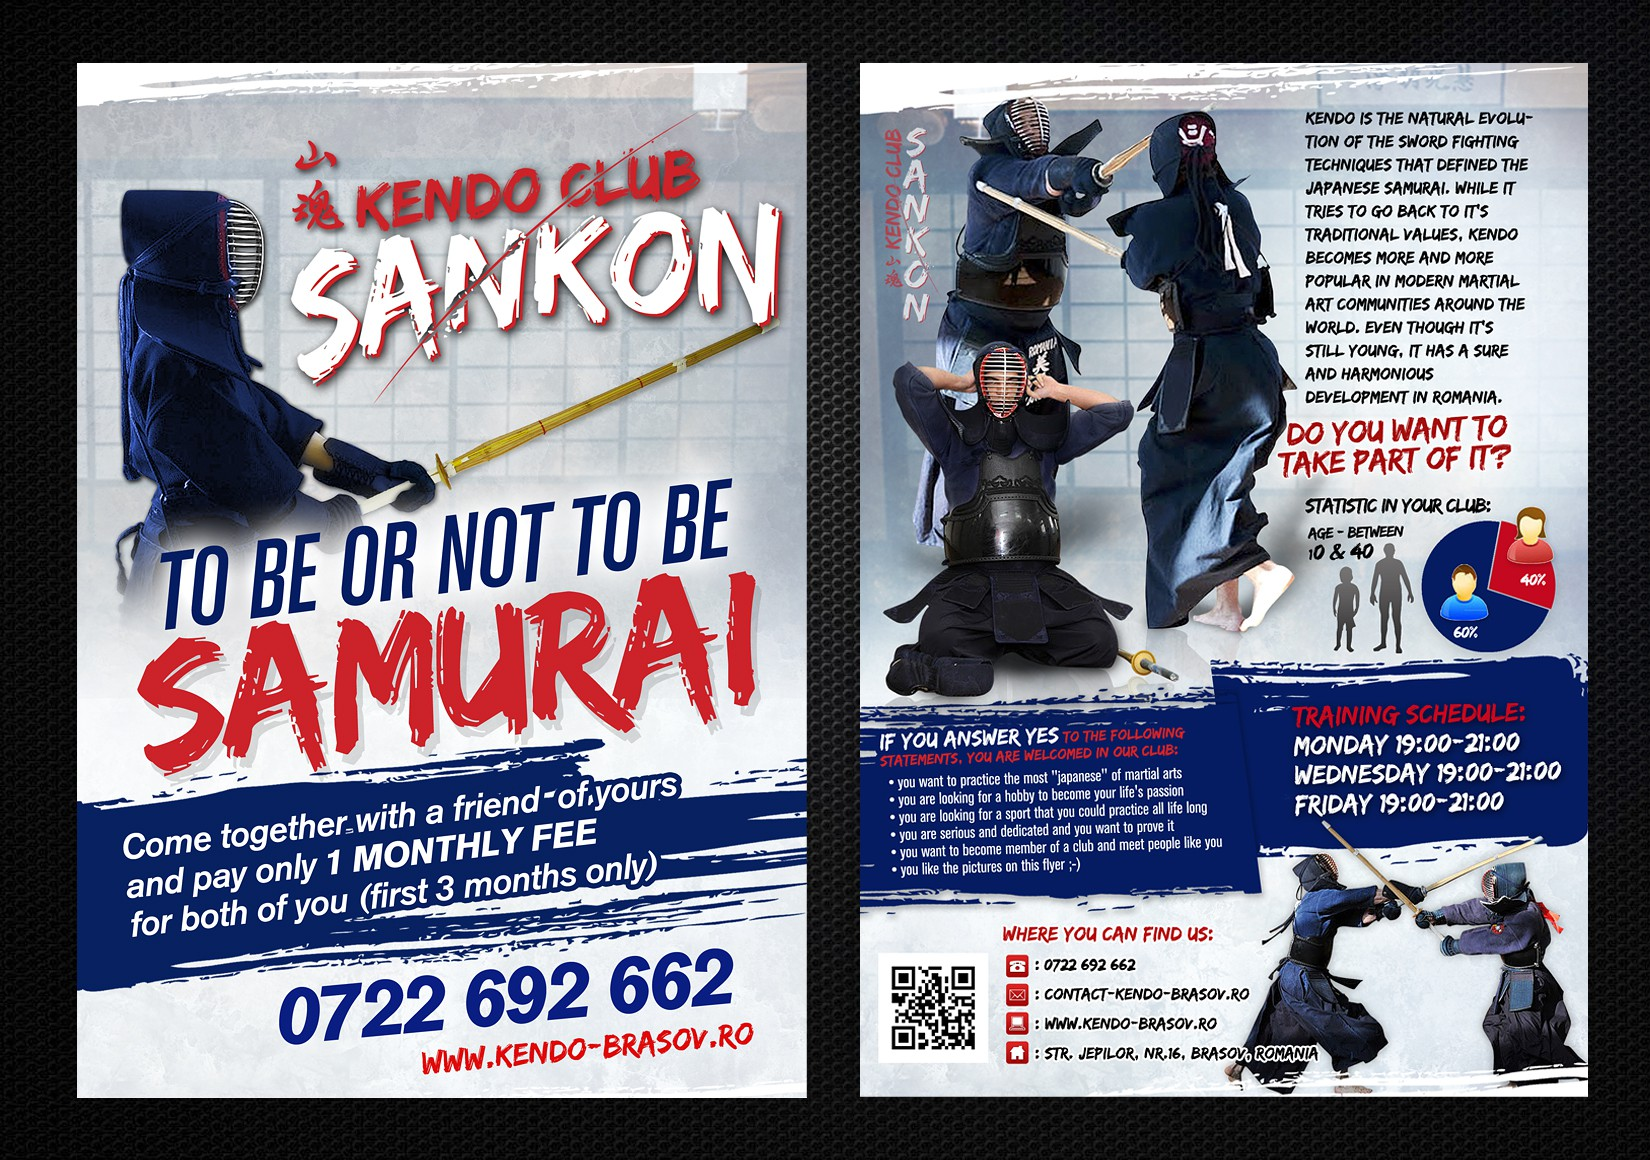 To be or not to be ... Samurai